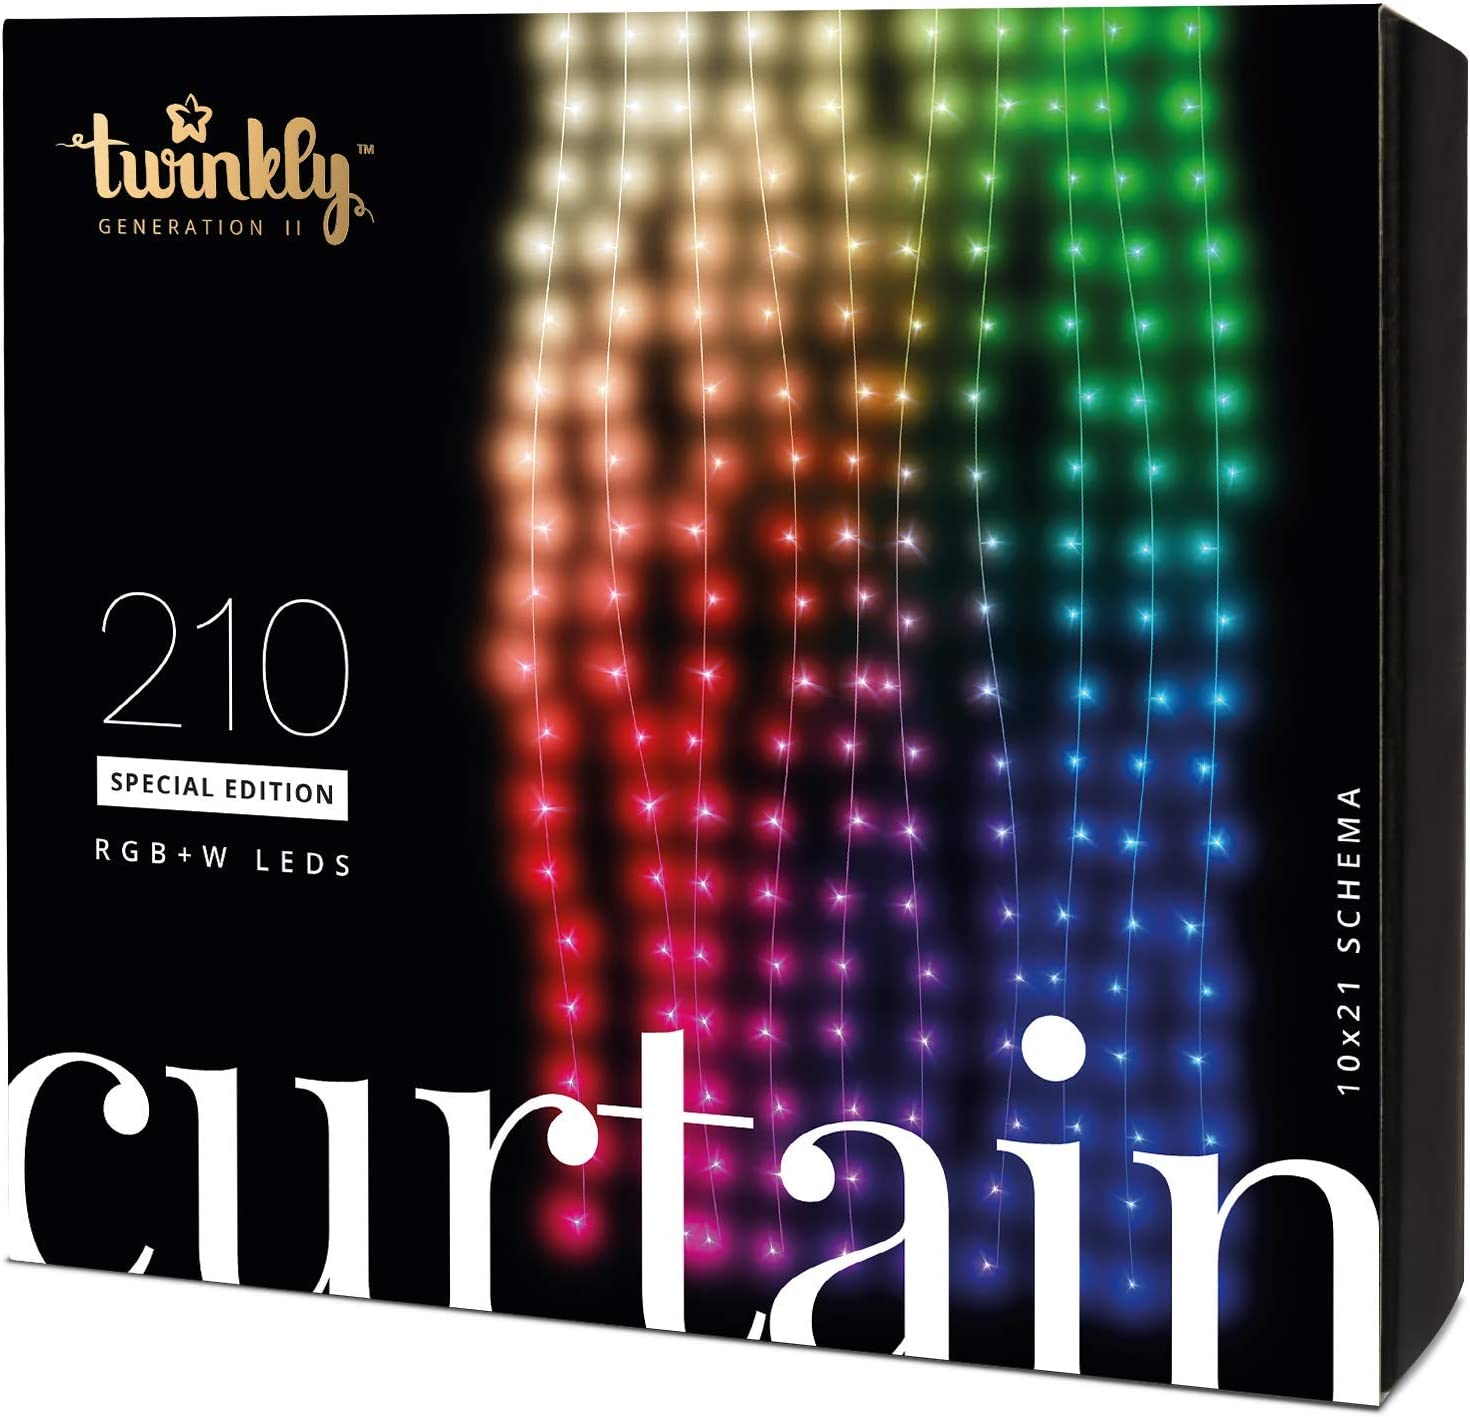 Twinkly Smart Decorations Custom LED Fairy Light Curtain – App Controlled Light Strings with 210 RGB+W LED Lights – IoT Ready Customizable Lighting – Create or Download Light Displays (3.2x7.2-Foot)